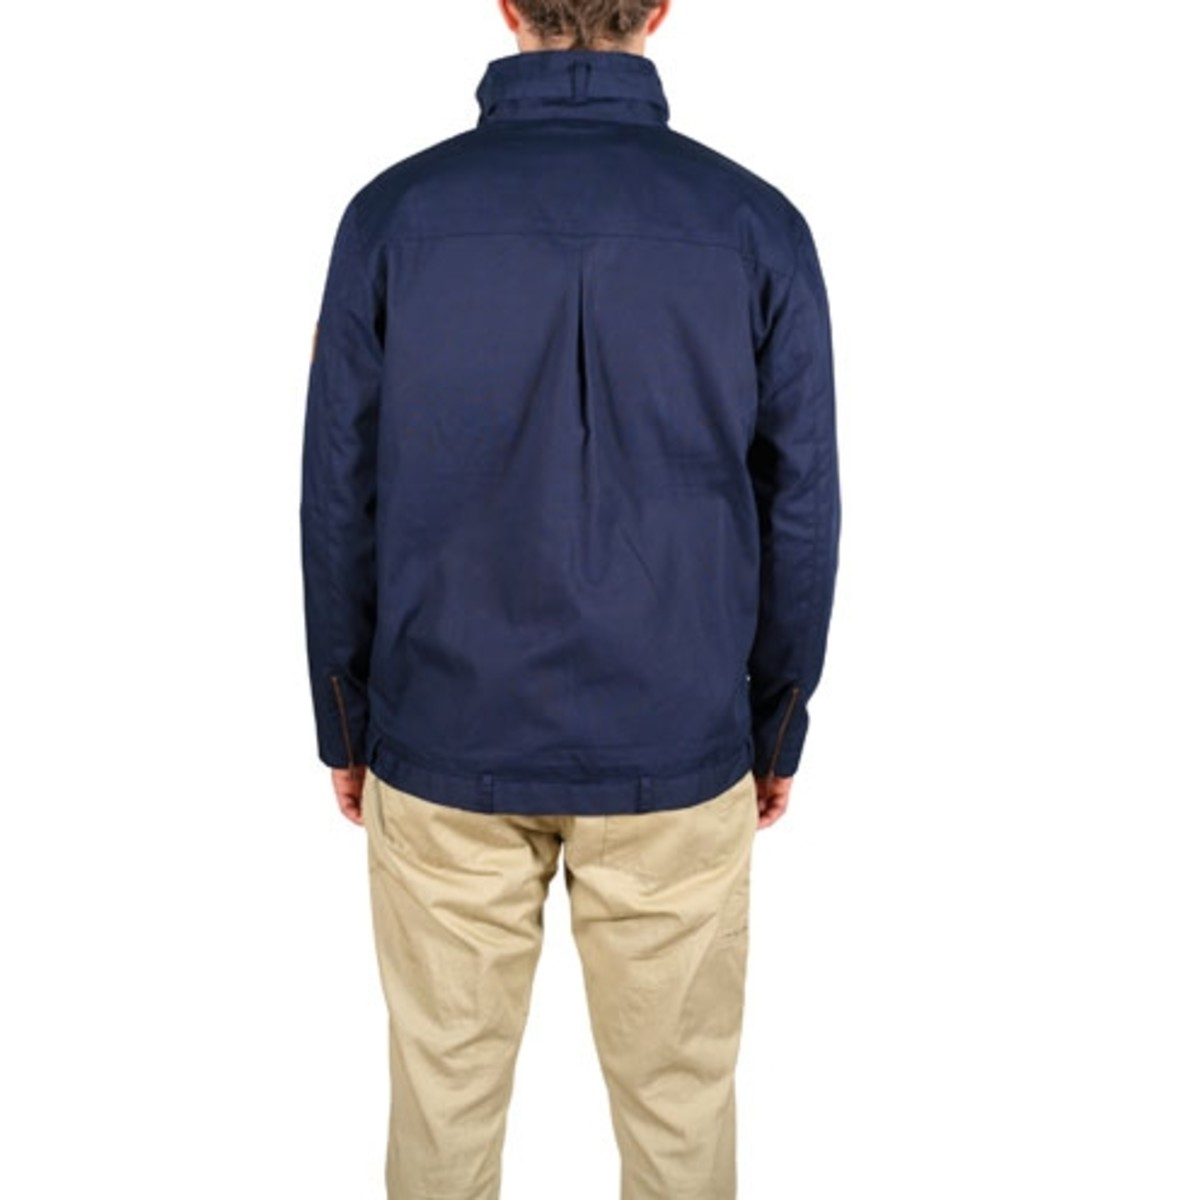 Penfield SS2011 Jackets 18